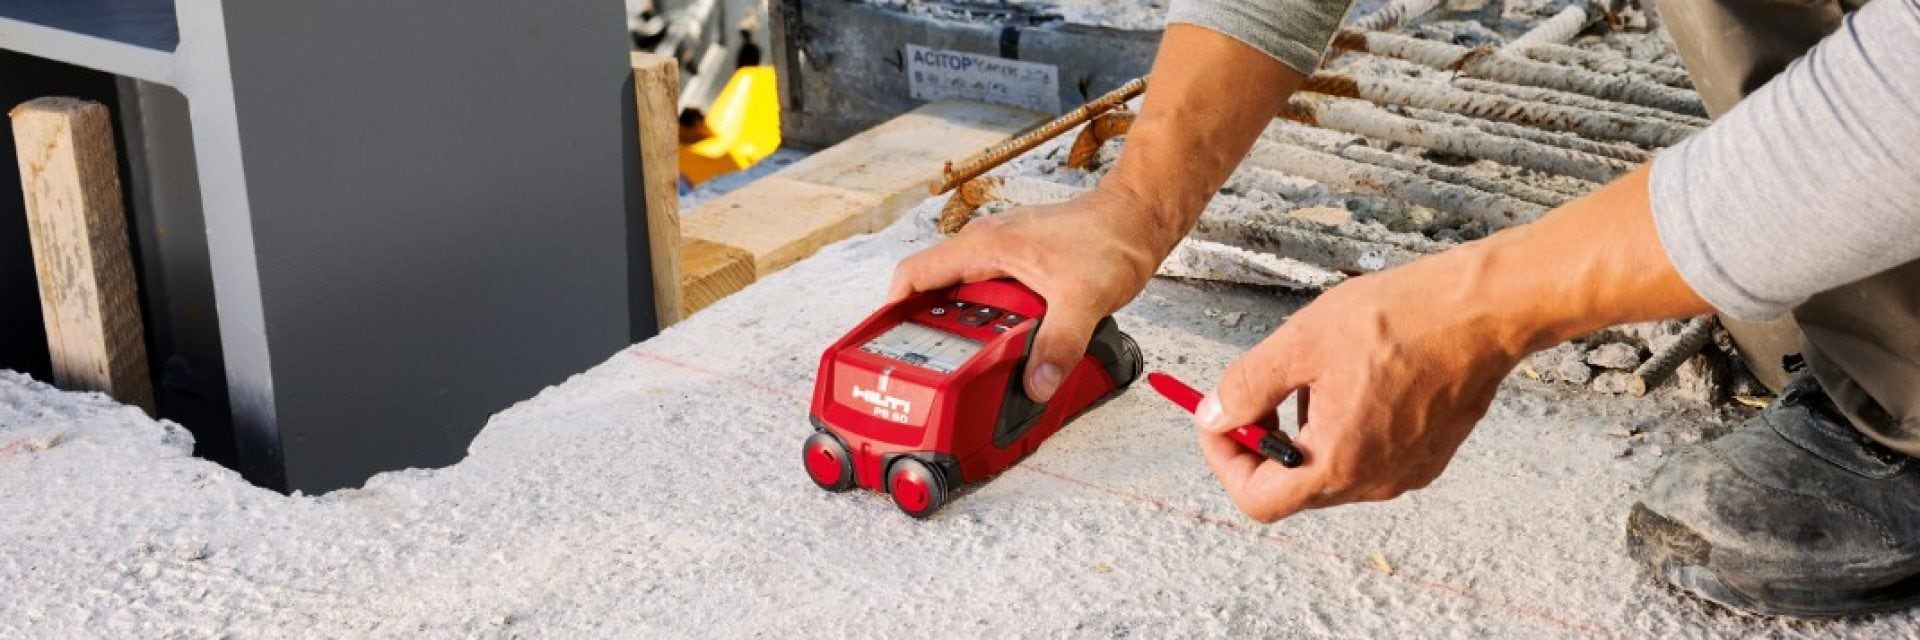 Hilti PS 50 Multidetector